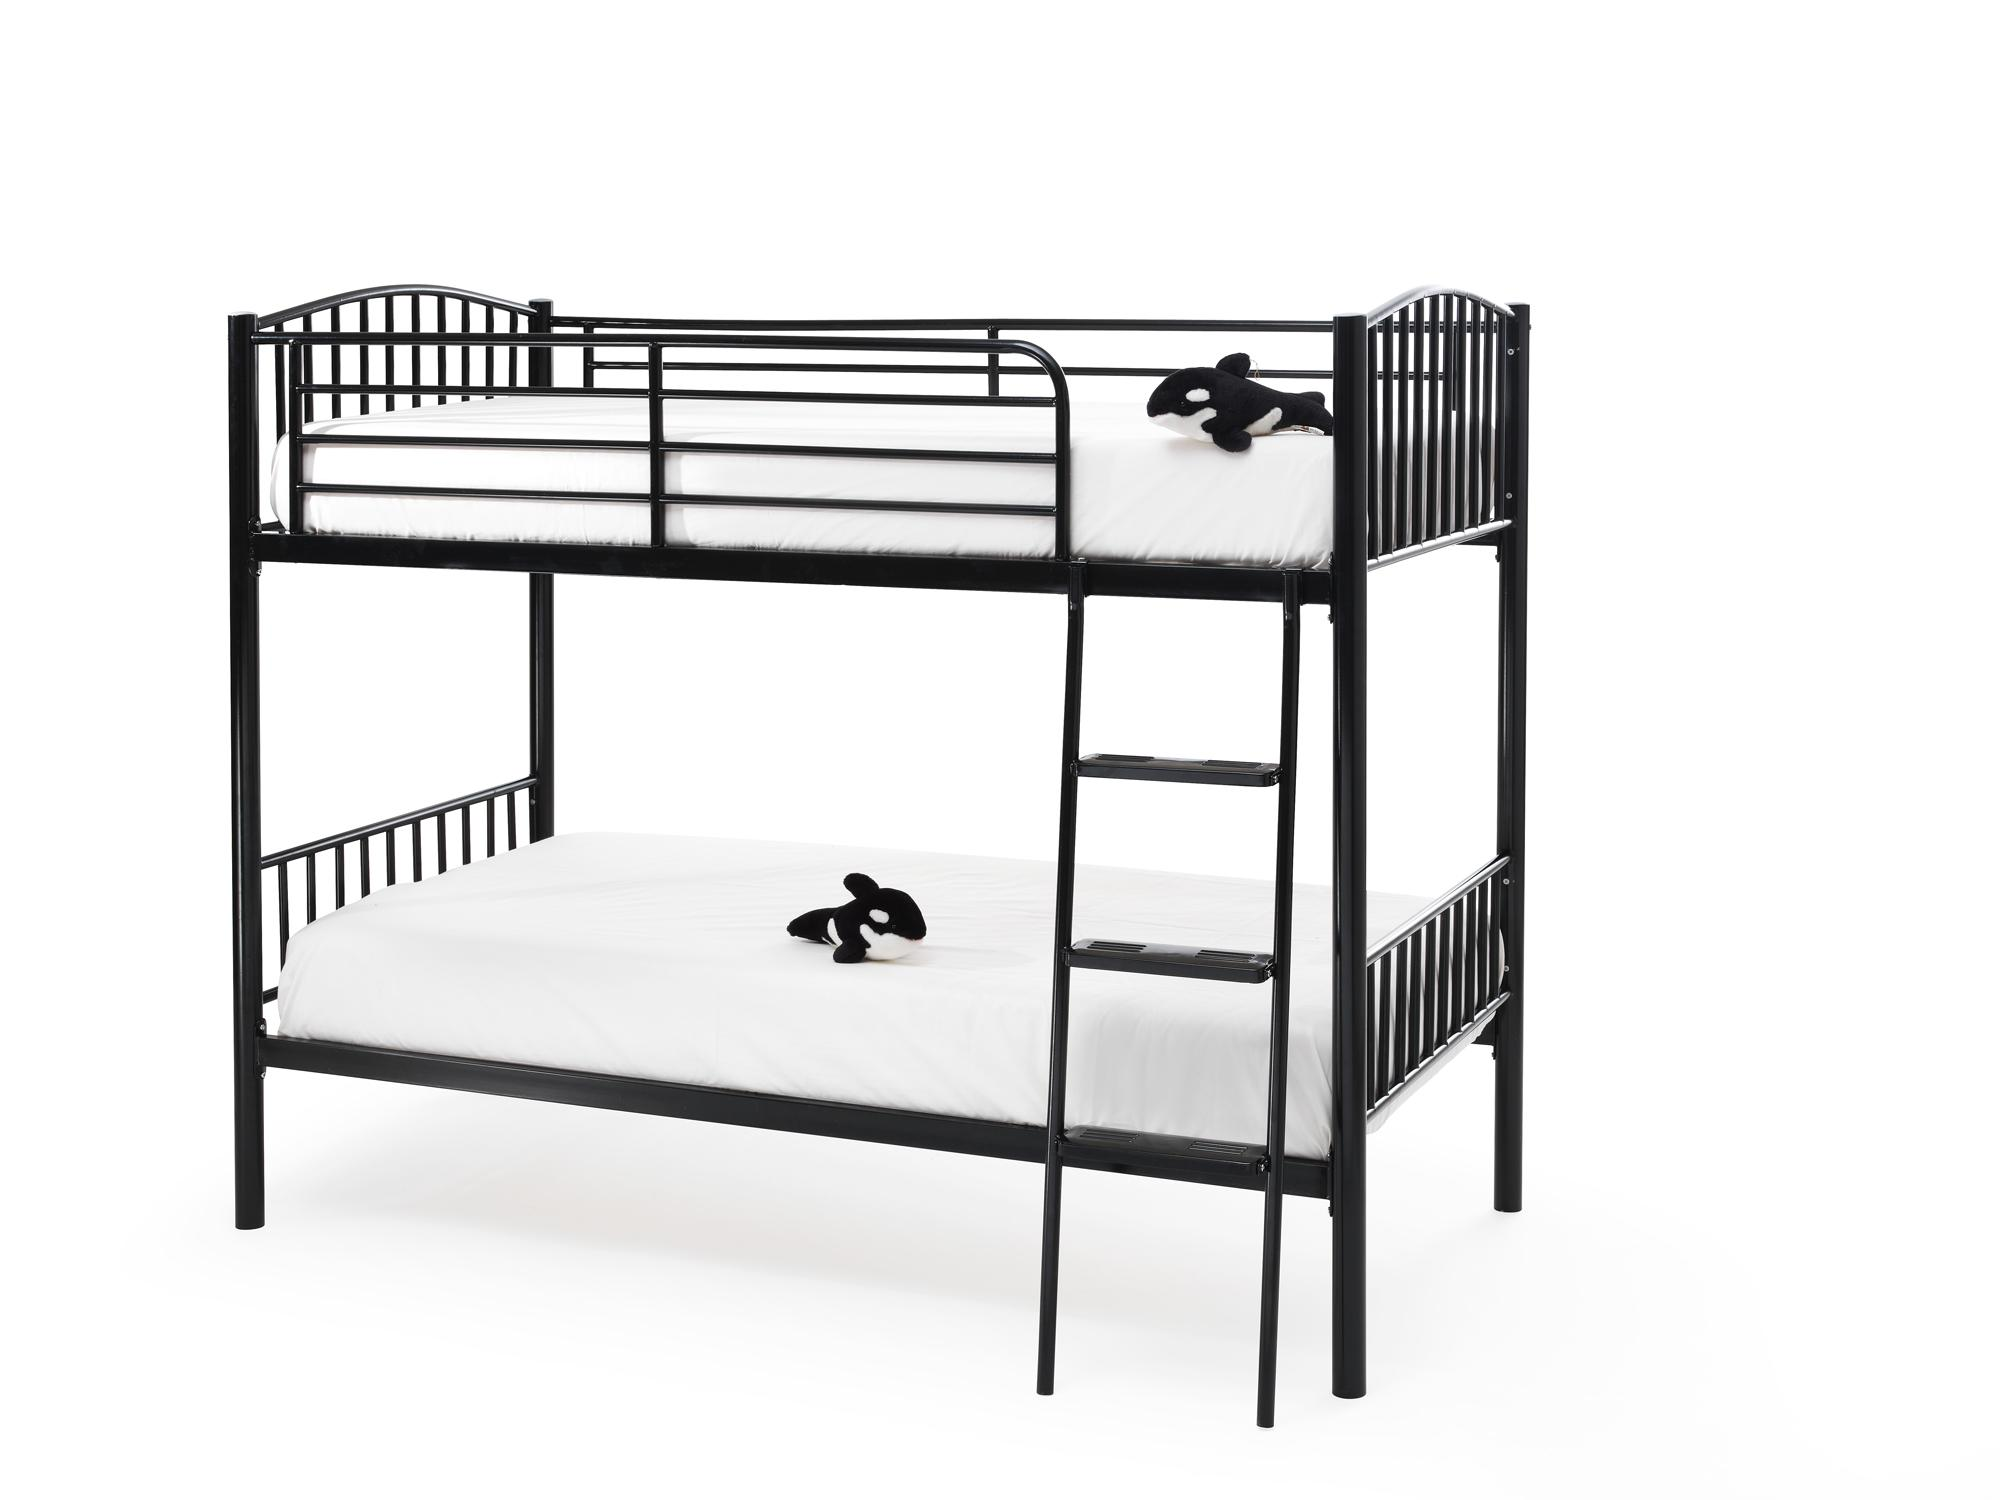 Buy cheap twin bed frame compare beds prices for best uk for Cheap twin bed frames